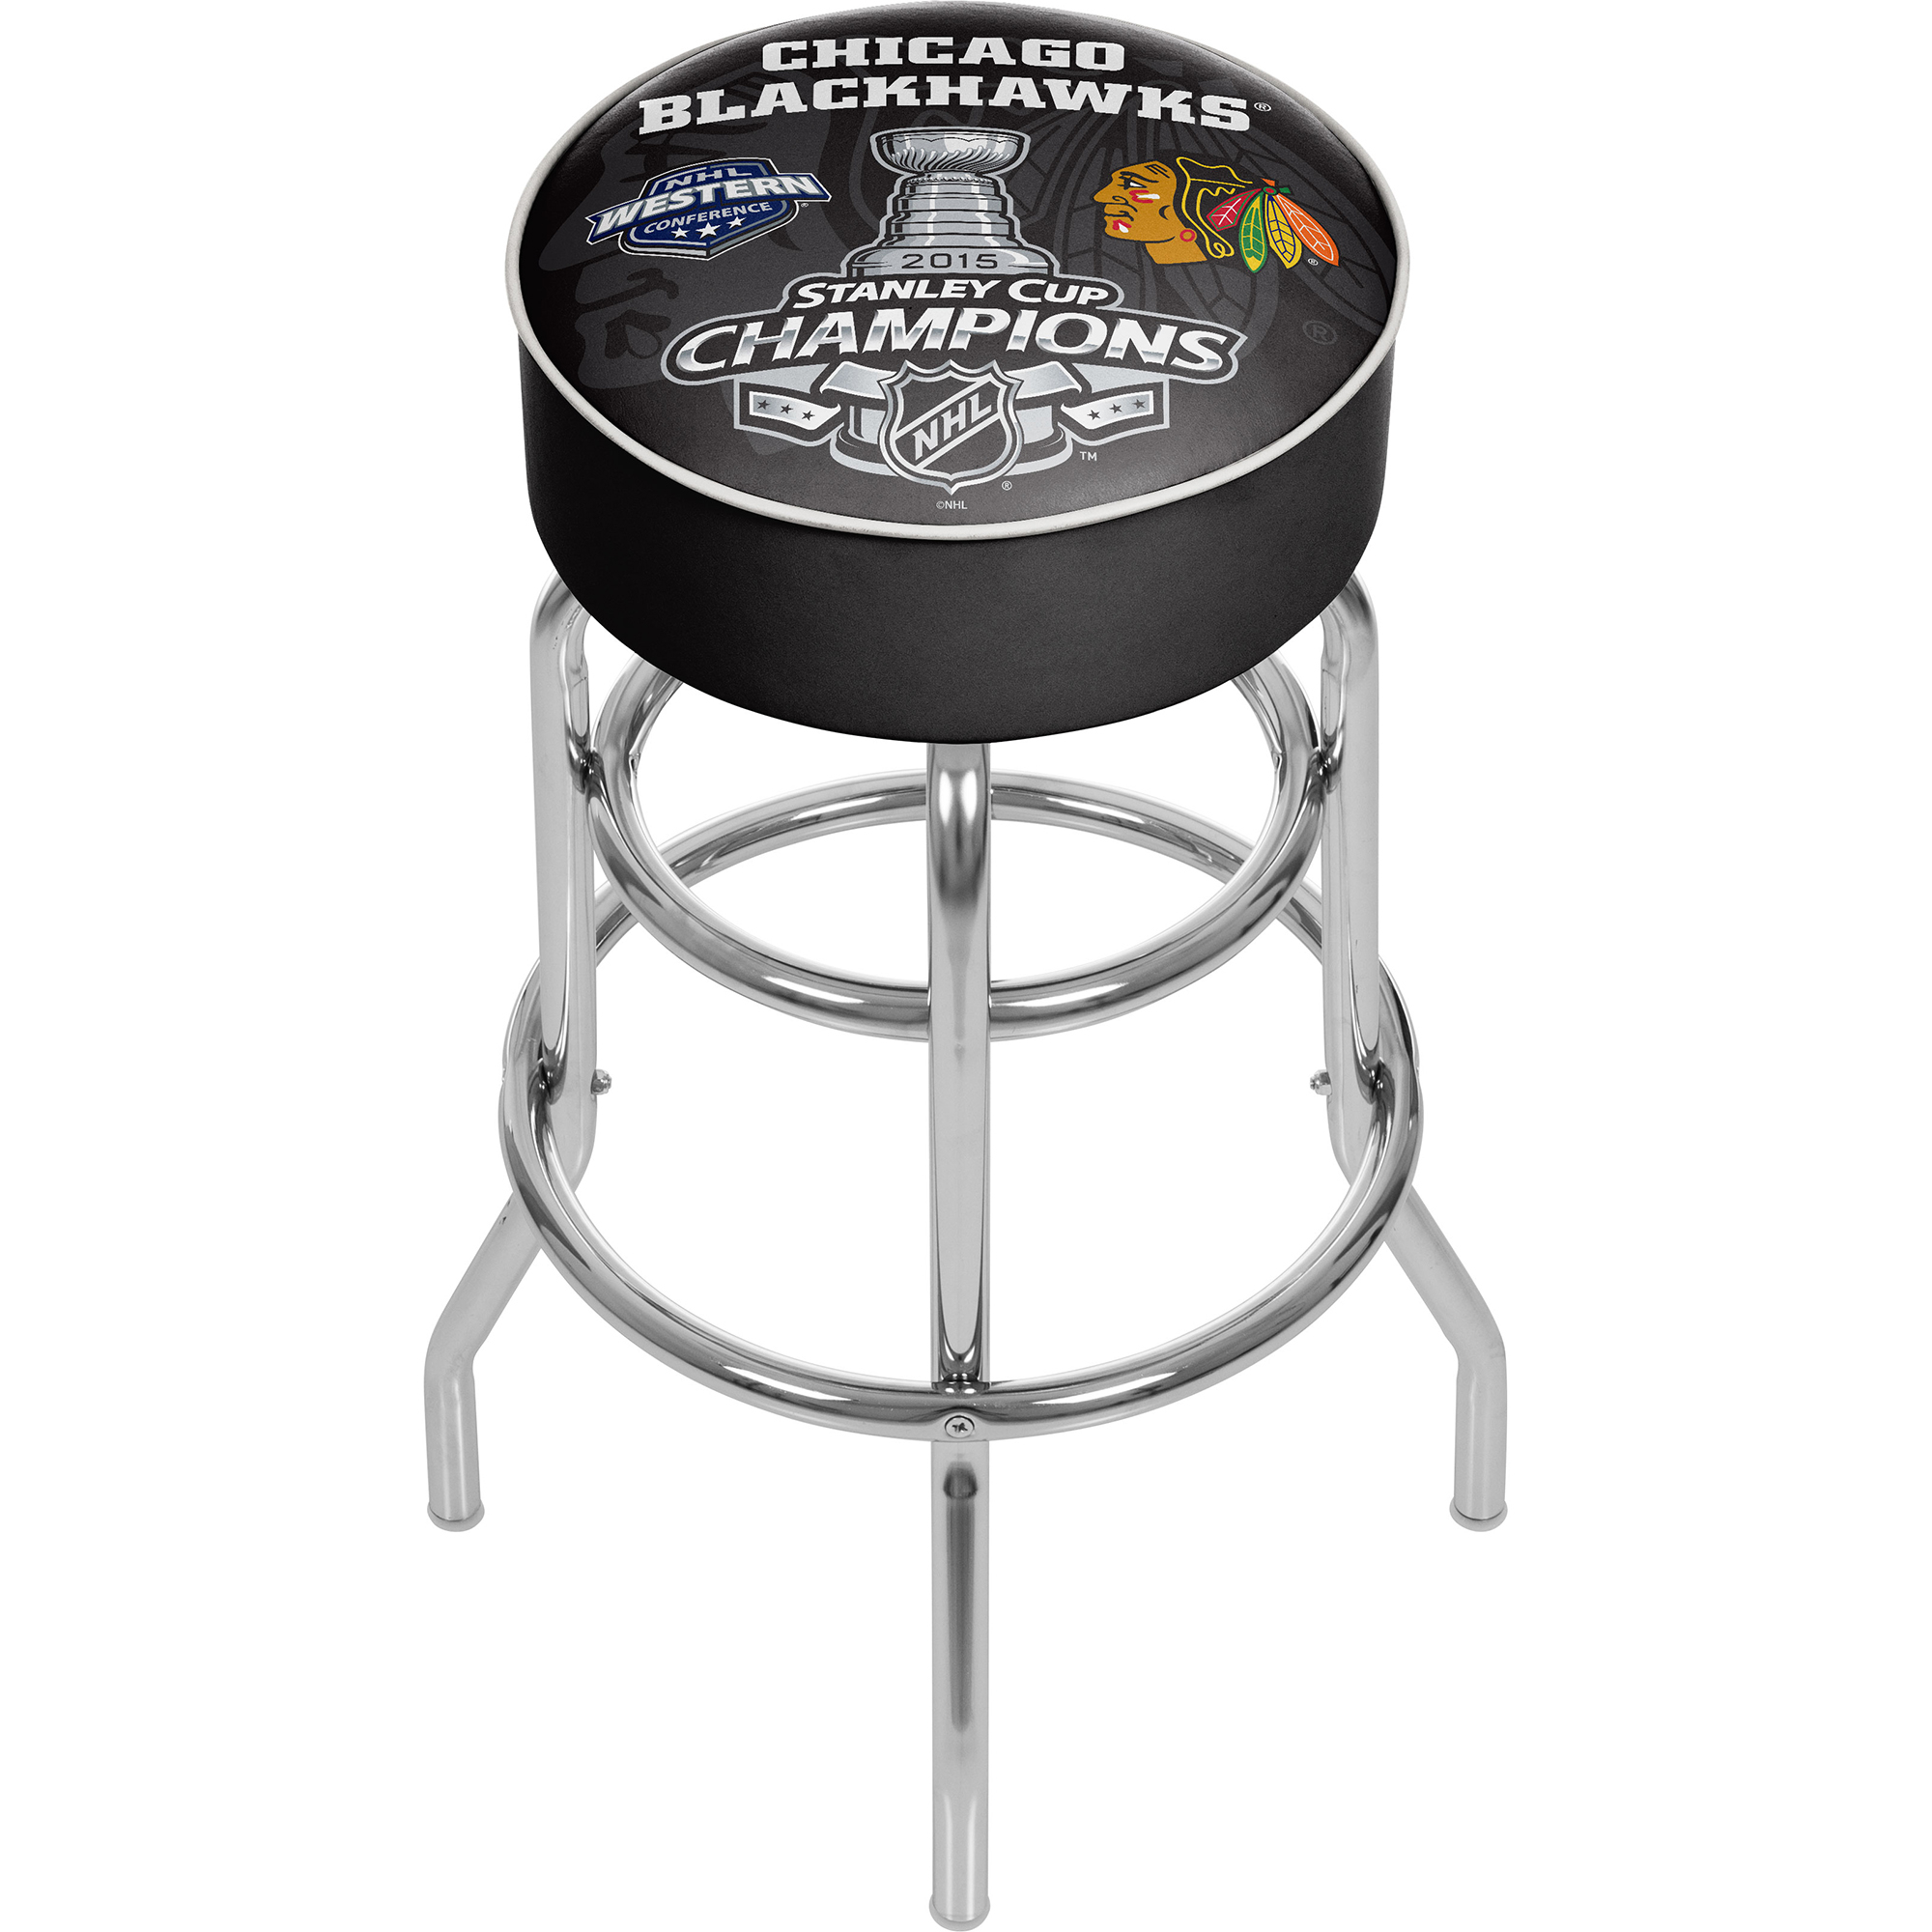 Chicago Blackhawks Swivel Bar Stool - 2015 Stanley Cup Champs 589b8beac98fc43a00165eff